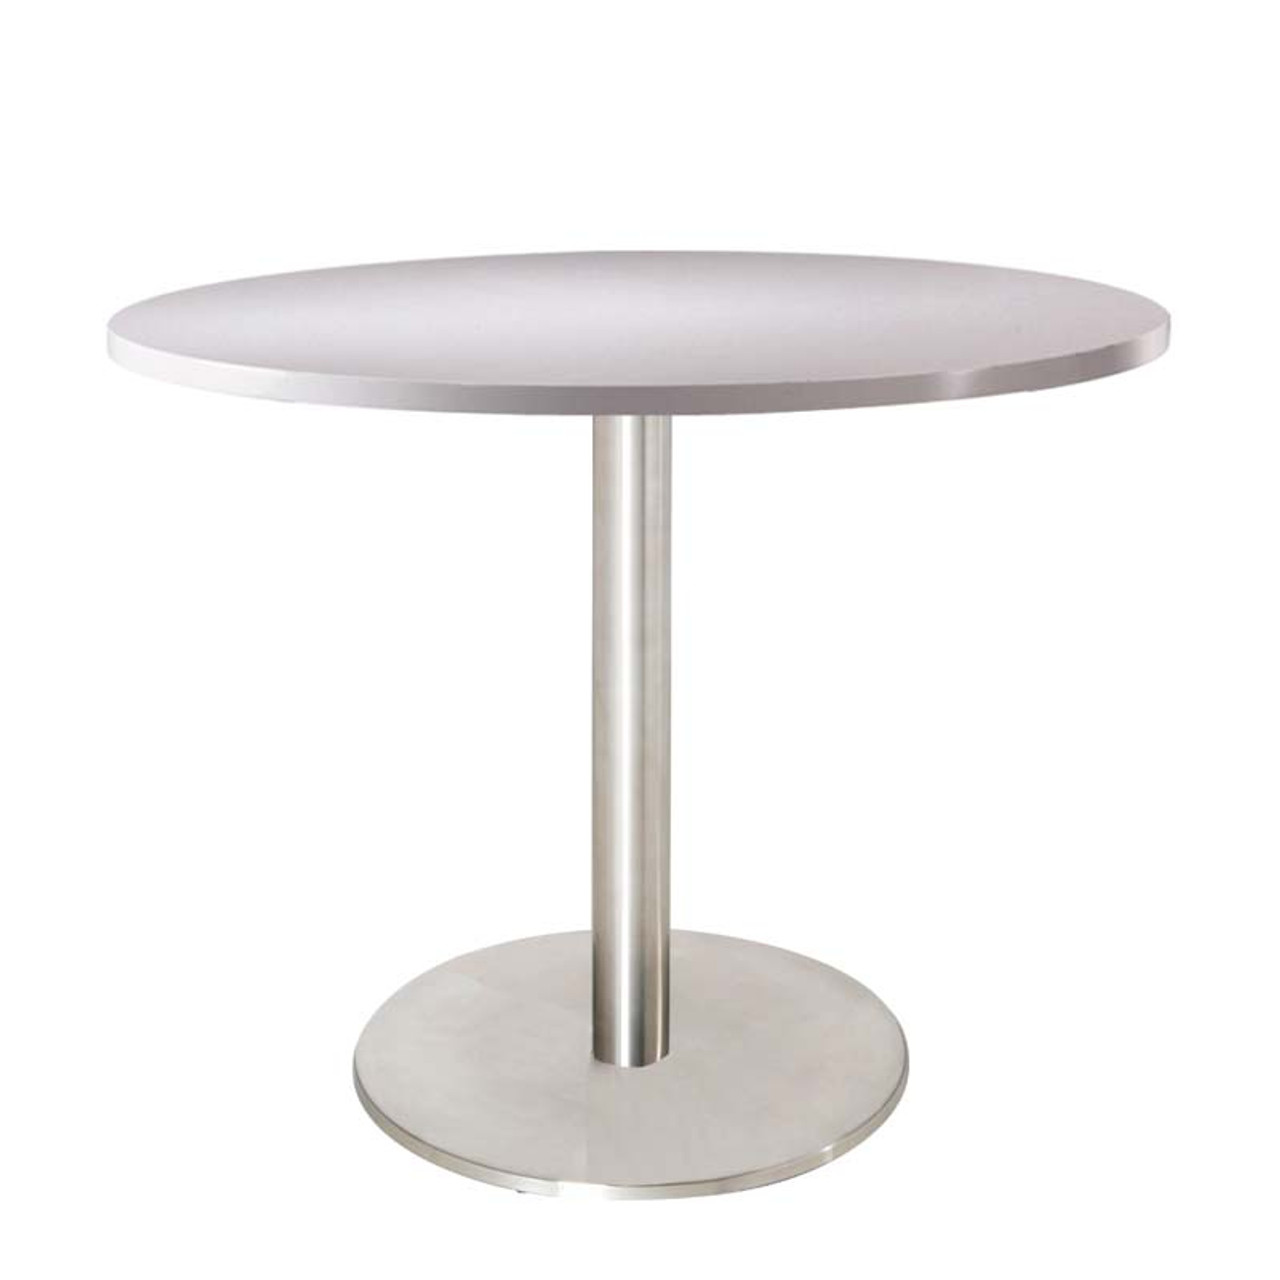 Sharon Stainless Steel Round Table Base